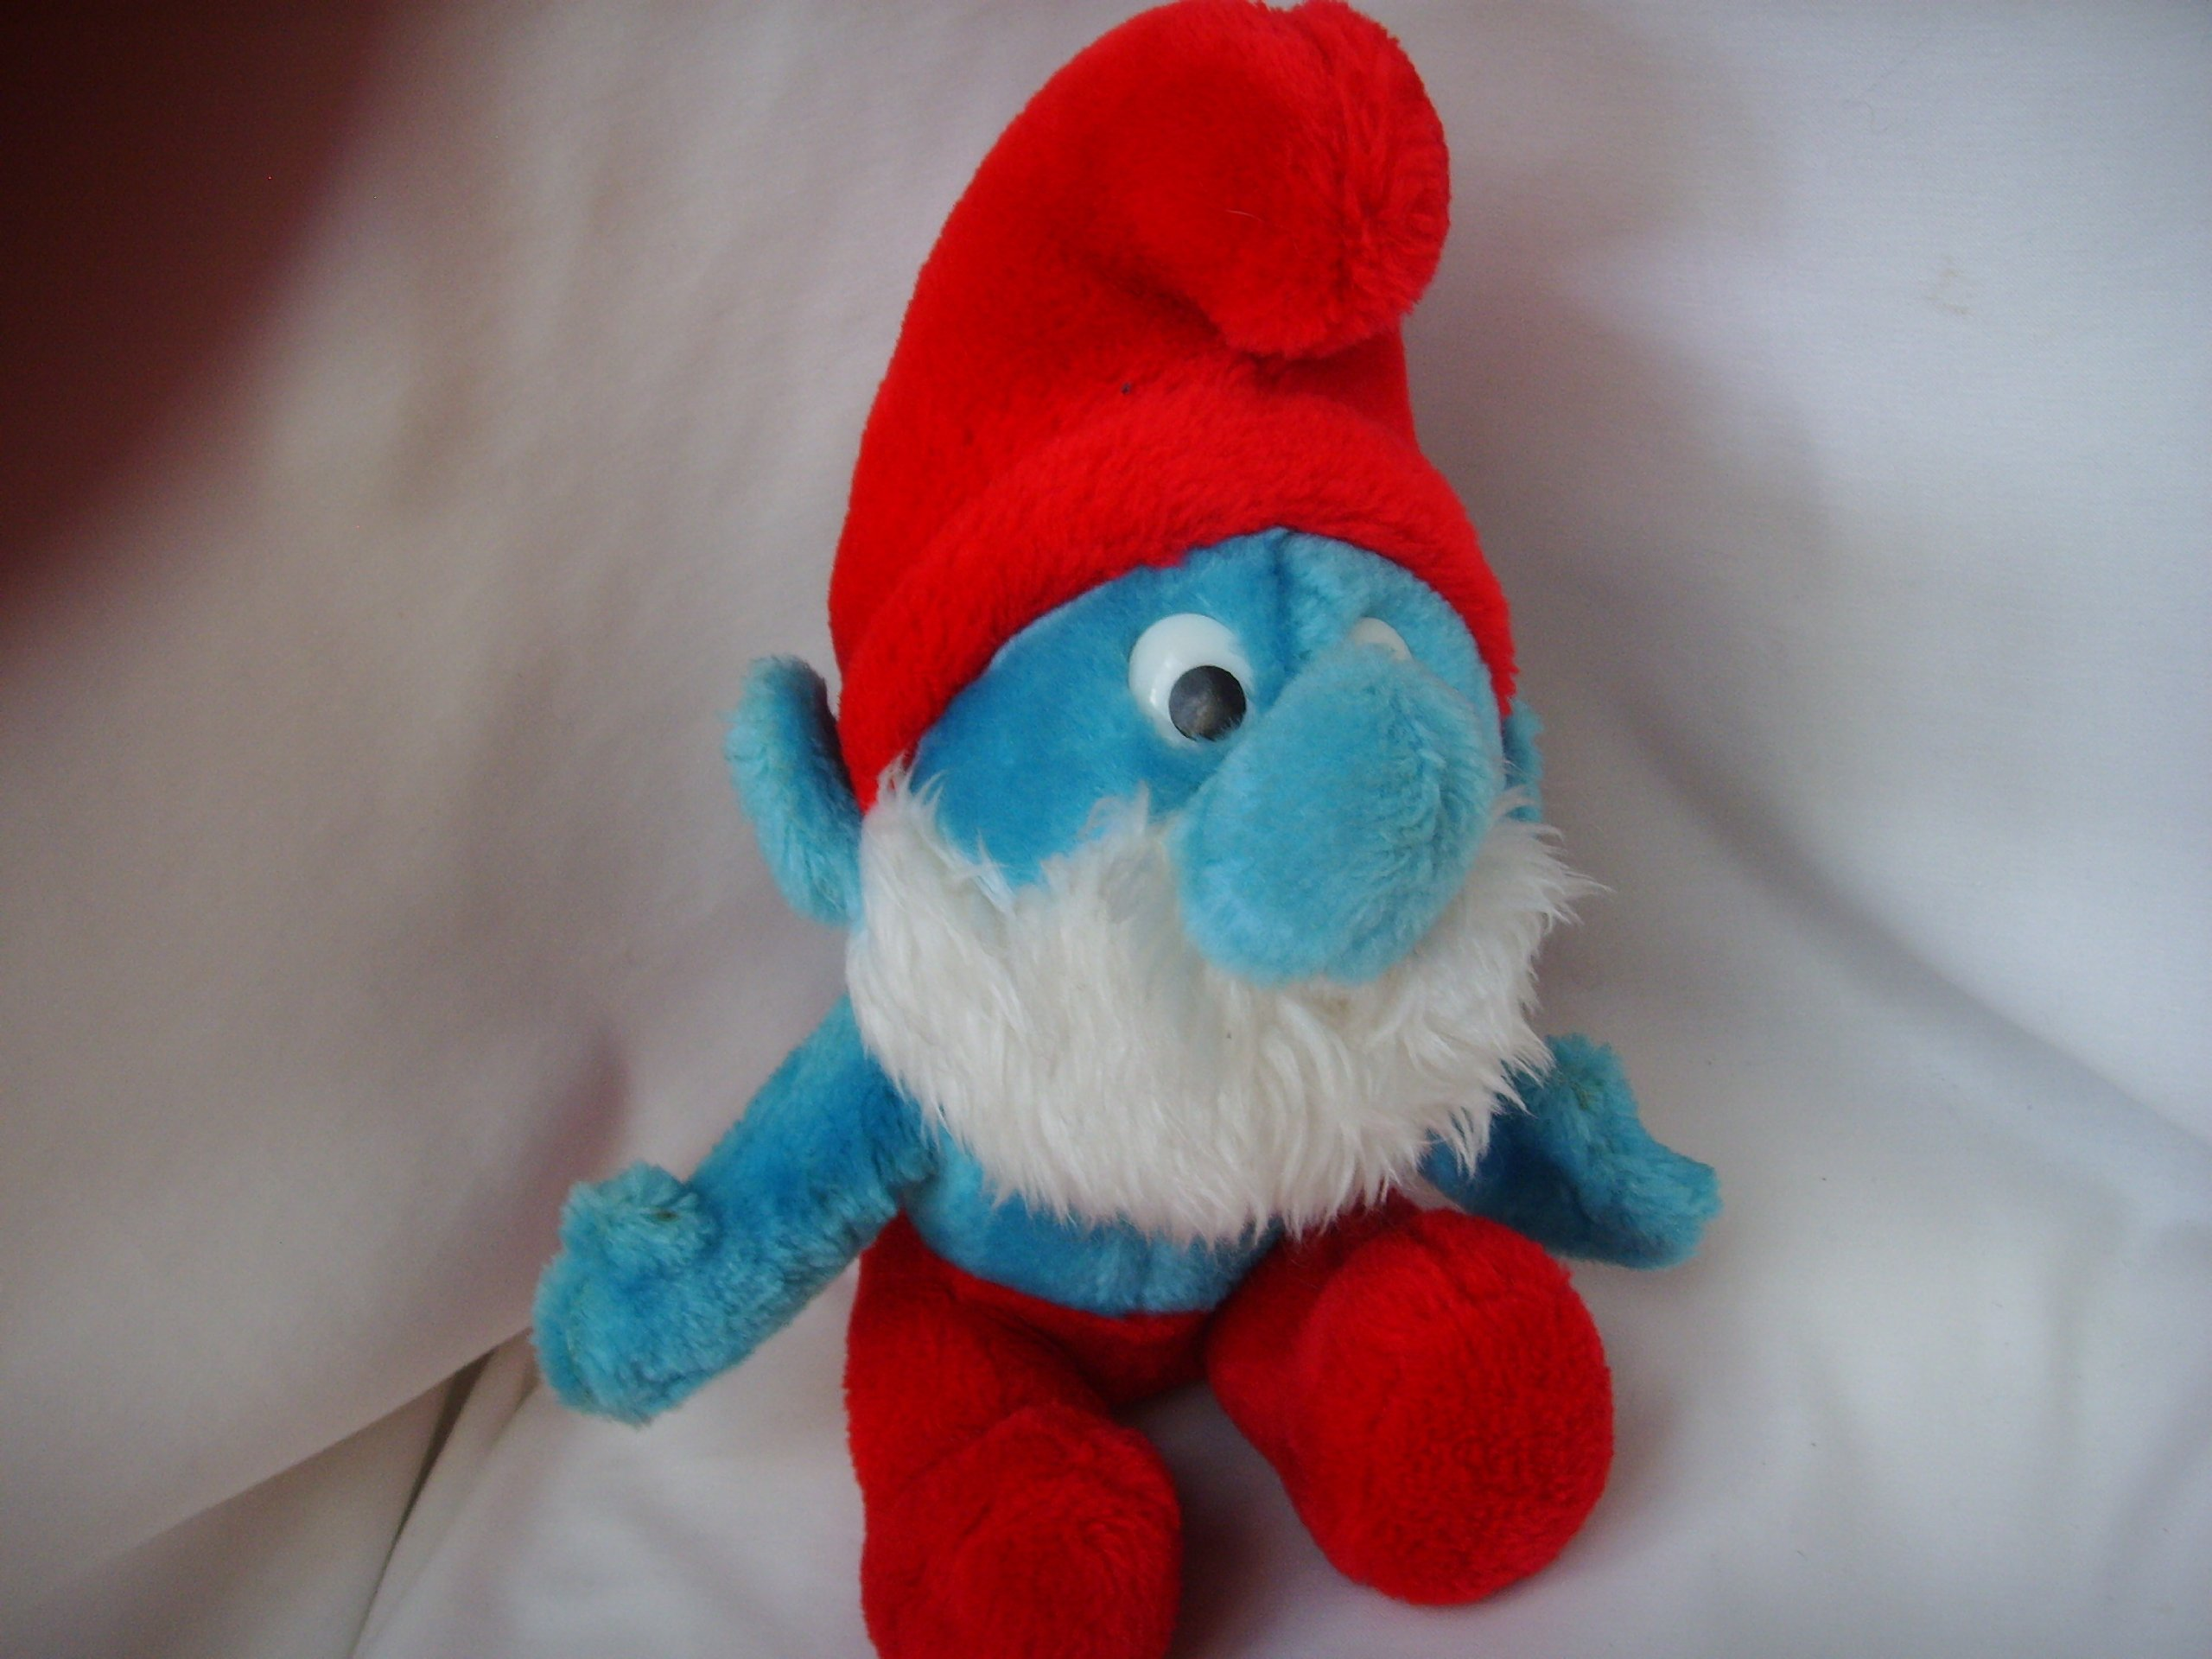 Smurf Plush Toy Large 12'' Vintage Collectible ; 1979 by Wallace Berrie & Co